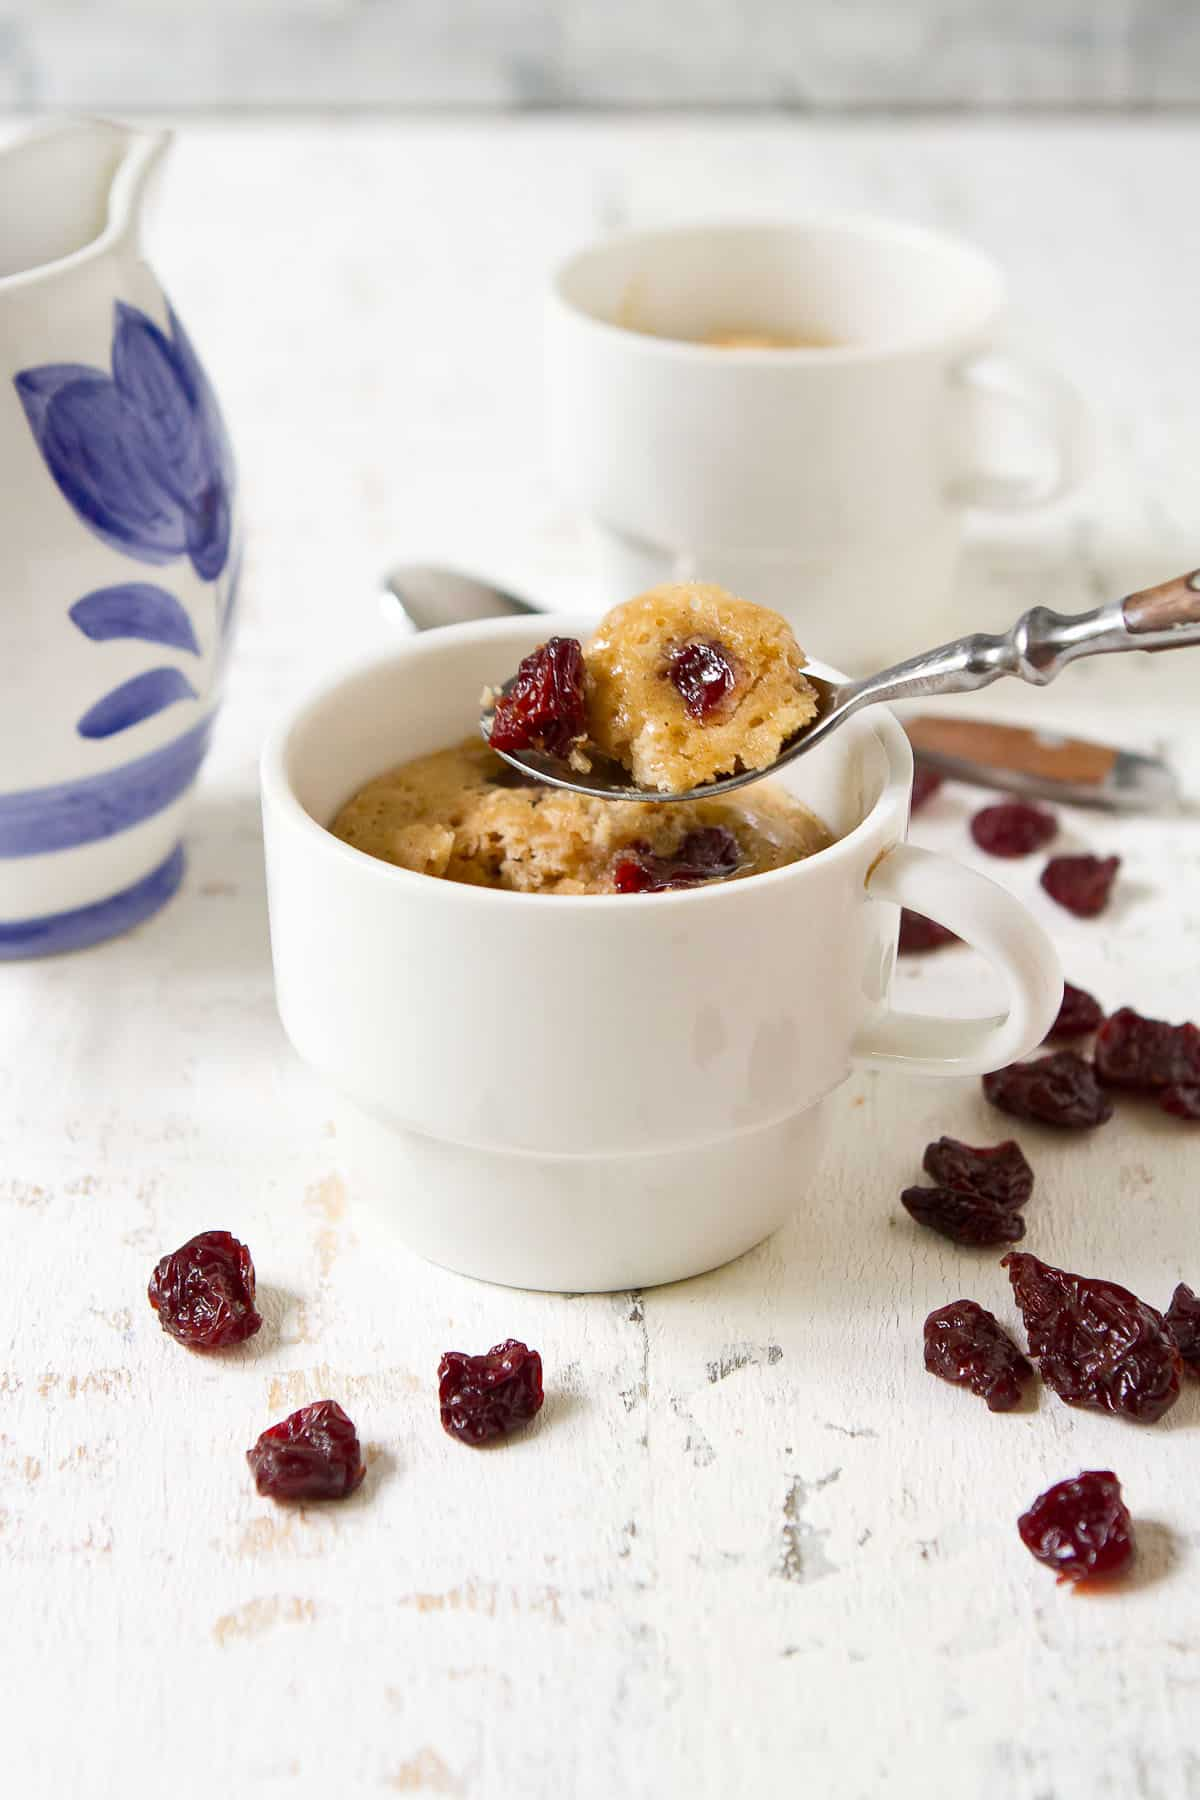 Pancakes in a mug just made healthy breakfasts a whole lot easier! And even better, they're packed with juicy, nutrient-rich Montmorency tart cherries. It's a win-win all round! | Breakfast easy | Breakfast quick | Make ahead | Microwave pancakes | Mug pancakes | From Scratch